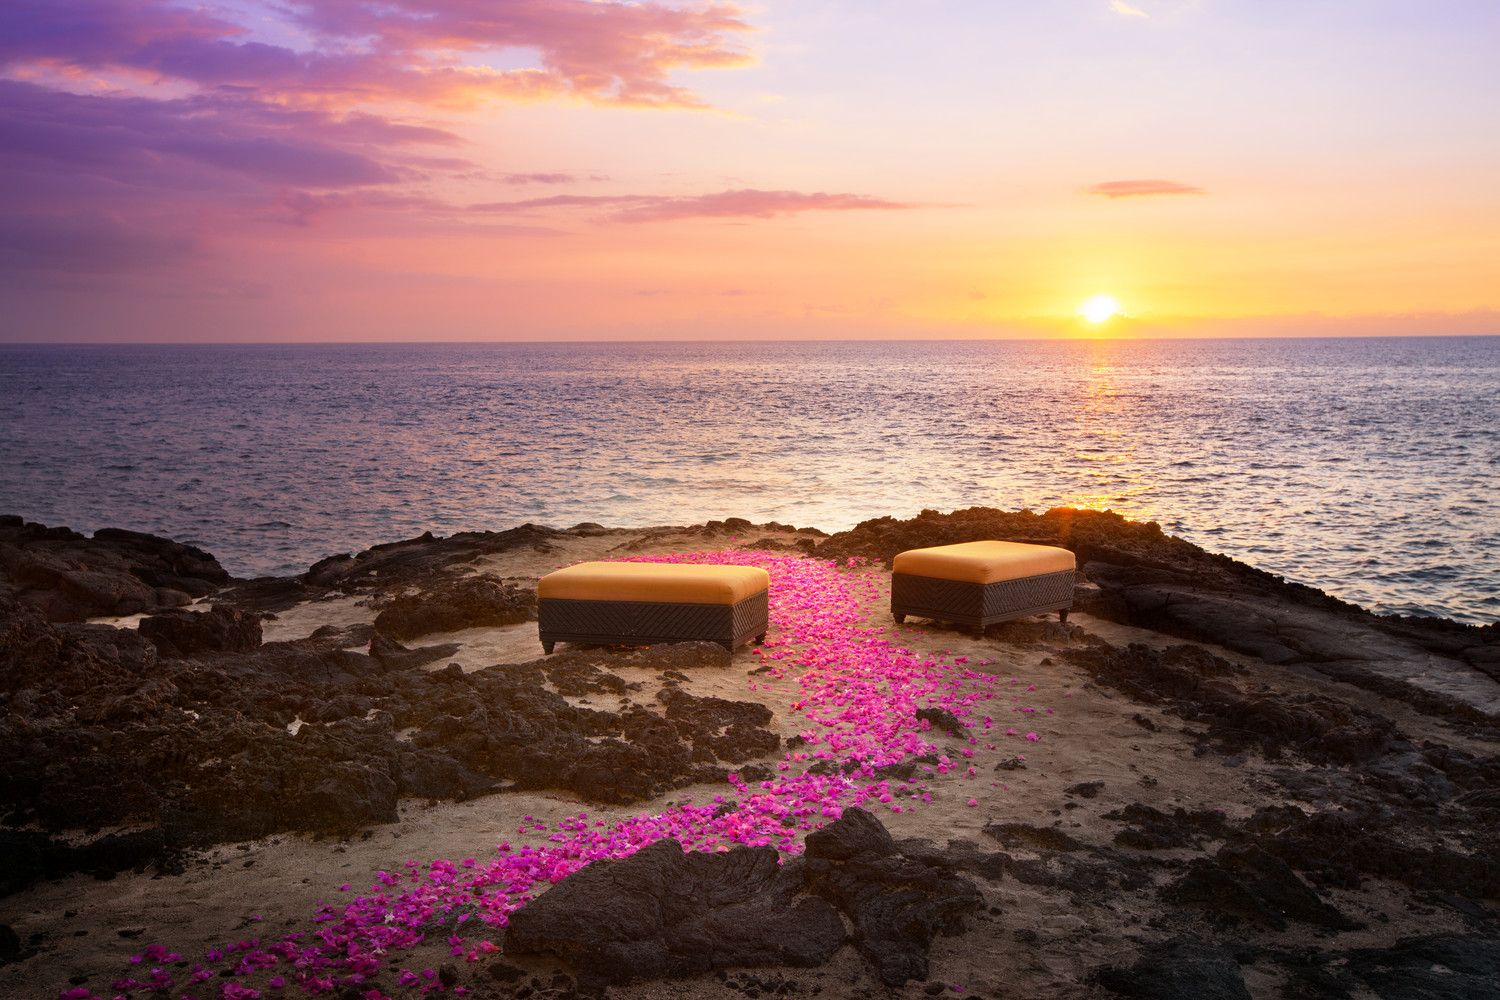 Kona Oceanfront Wedding Resorts - Sunset Cliff